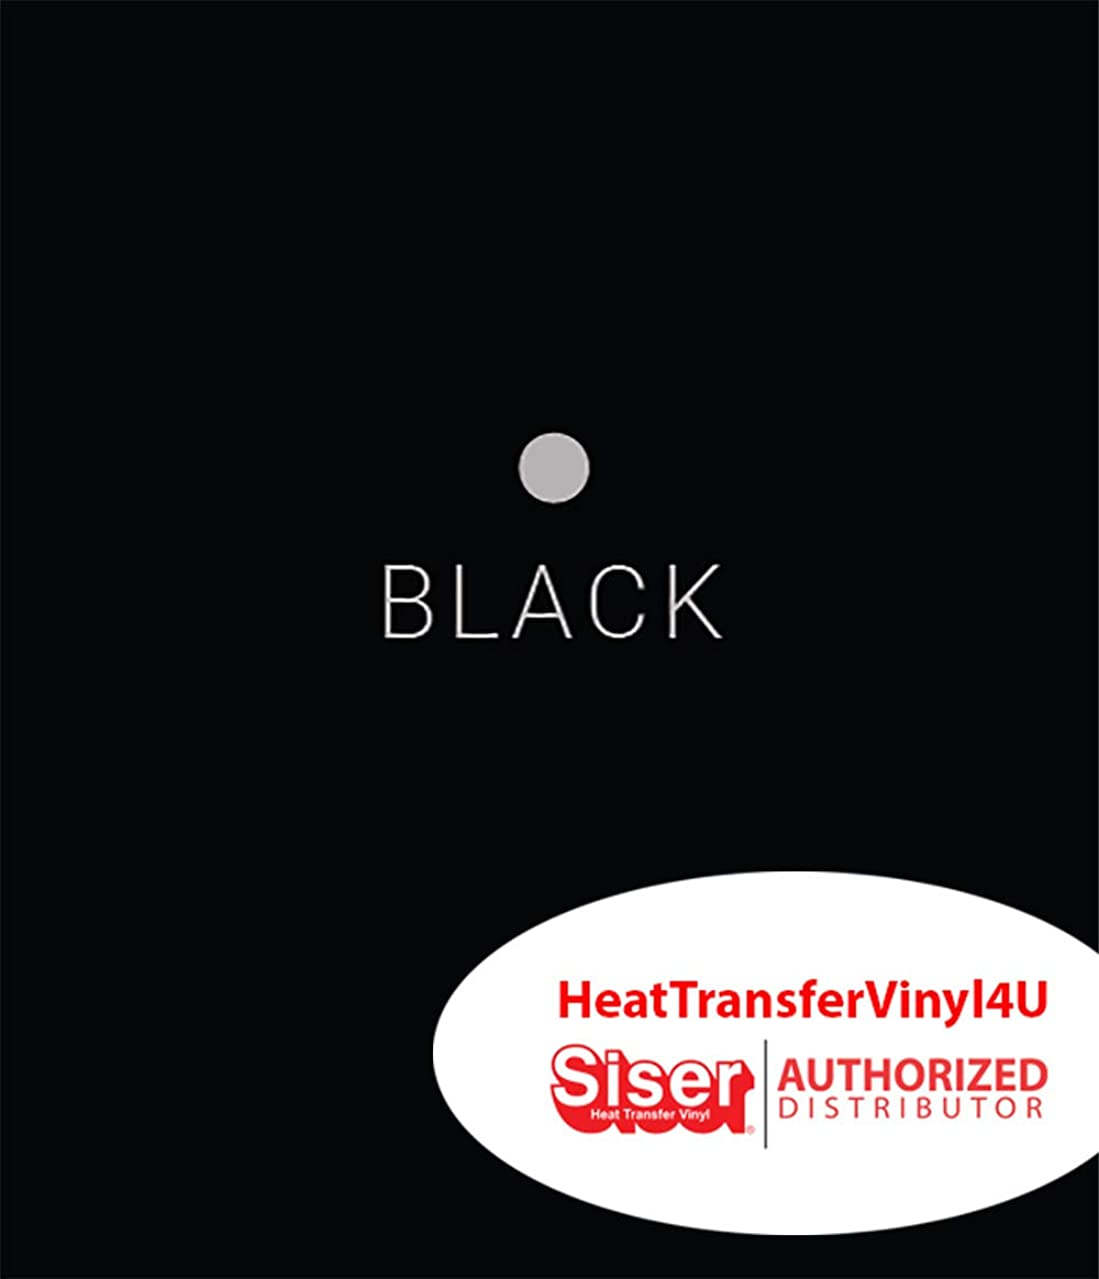 Siser EasyWeed Iron On Heat Transfer Vinyl - 12 inches (Black, 12 Inches by 3 Feet)